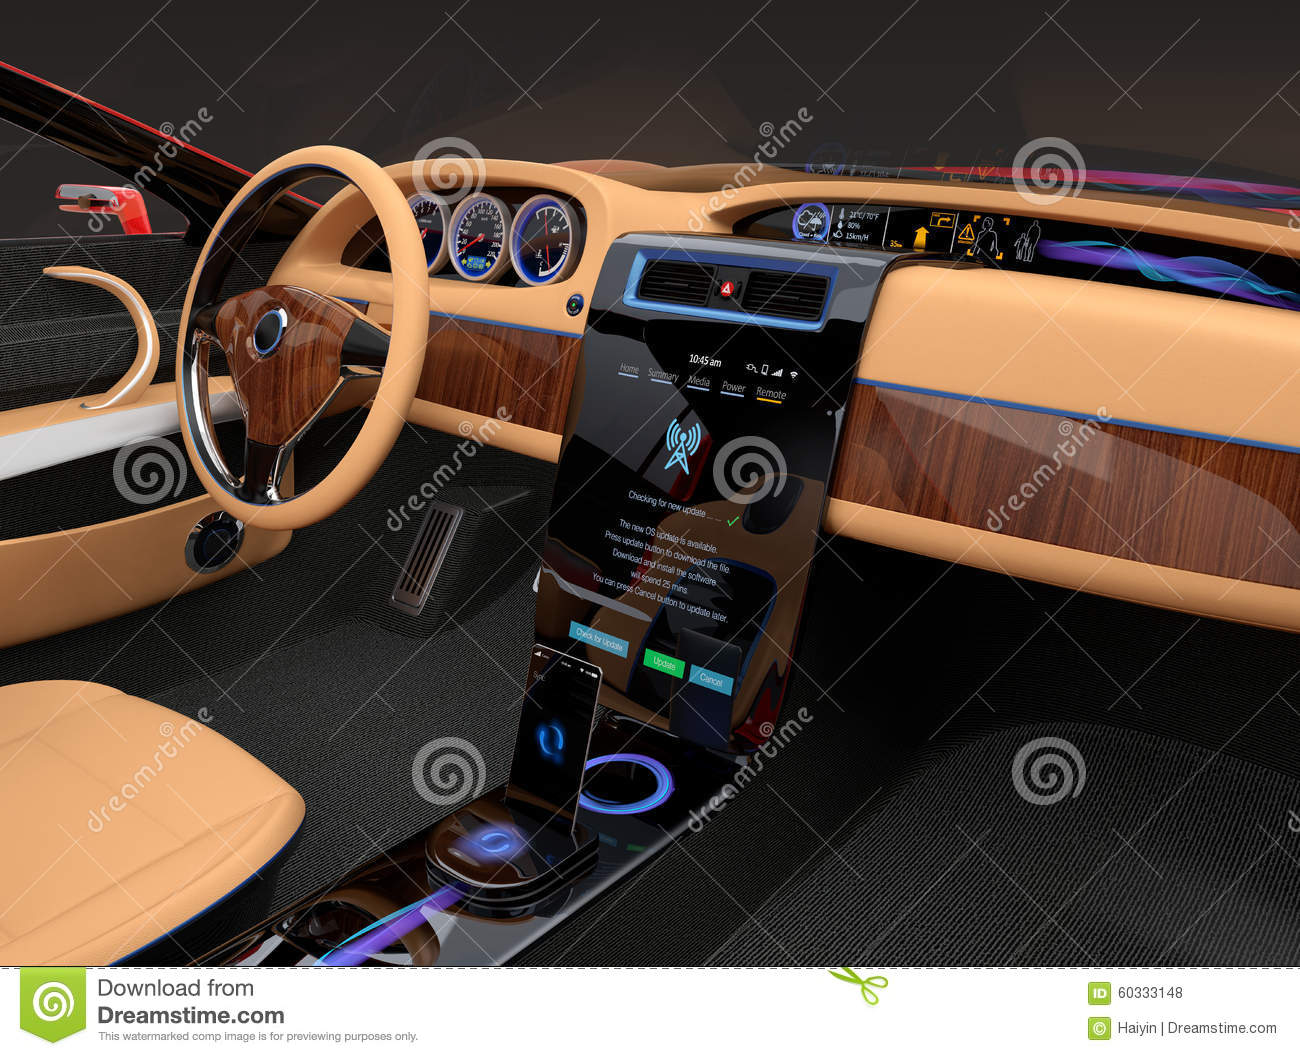 int rieur l gant de voiture lectrique avec la d coration en bois de luxe de mod le photo stock. Black Bedroom Furniture Sets. Home Design Ideas